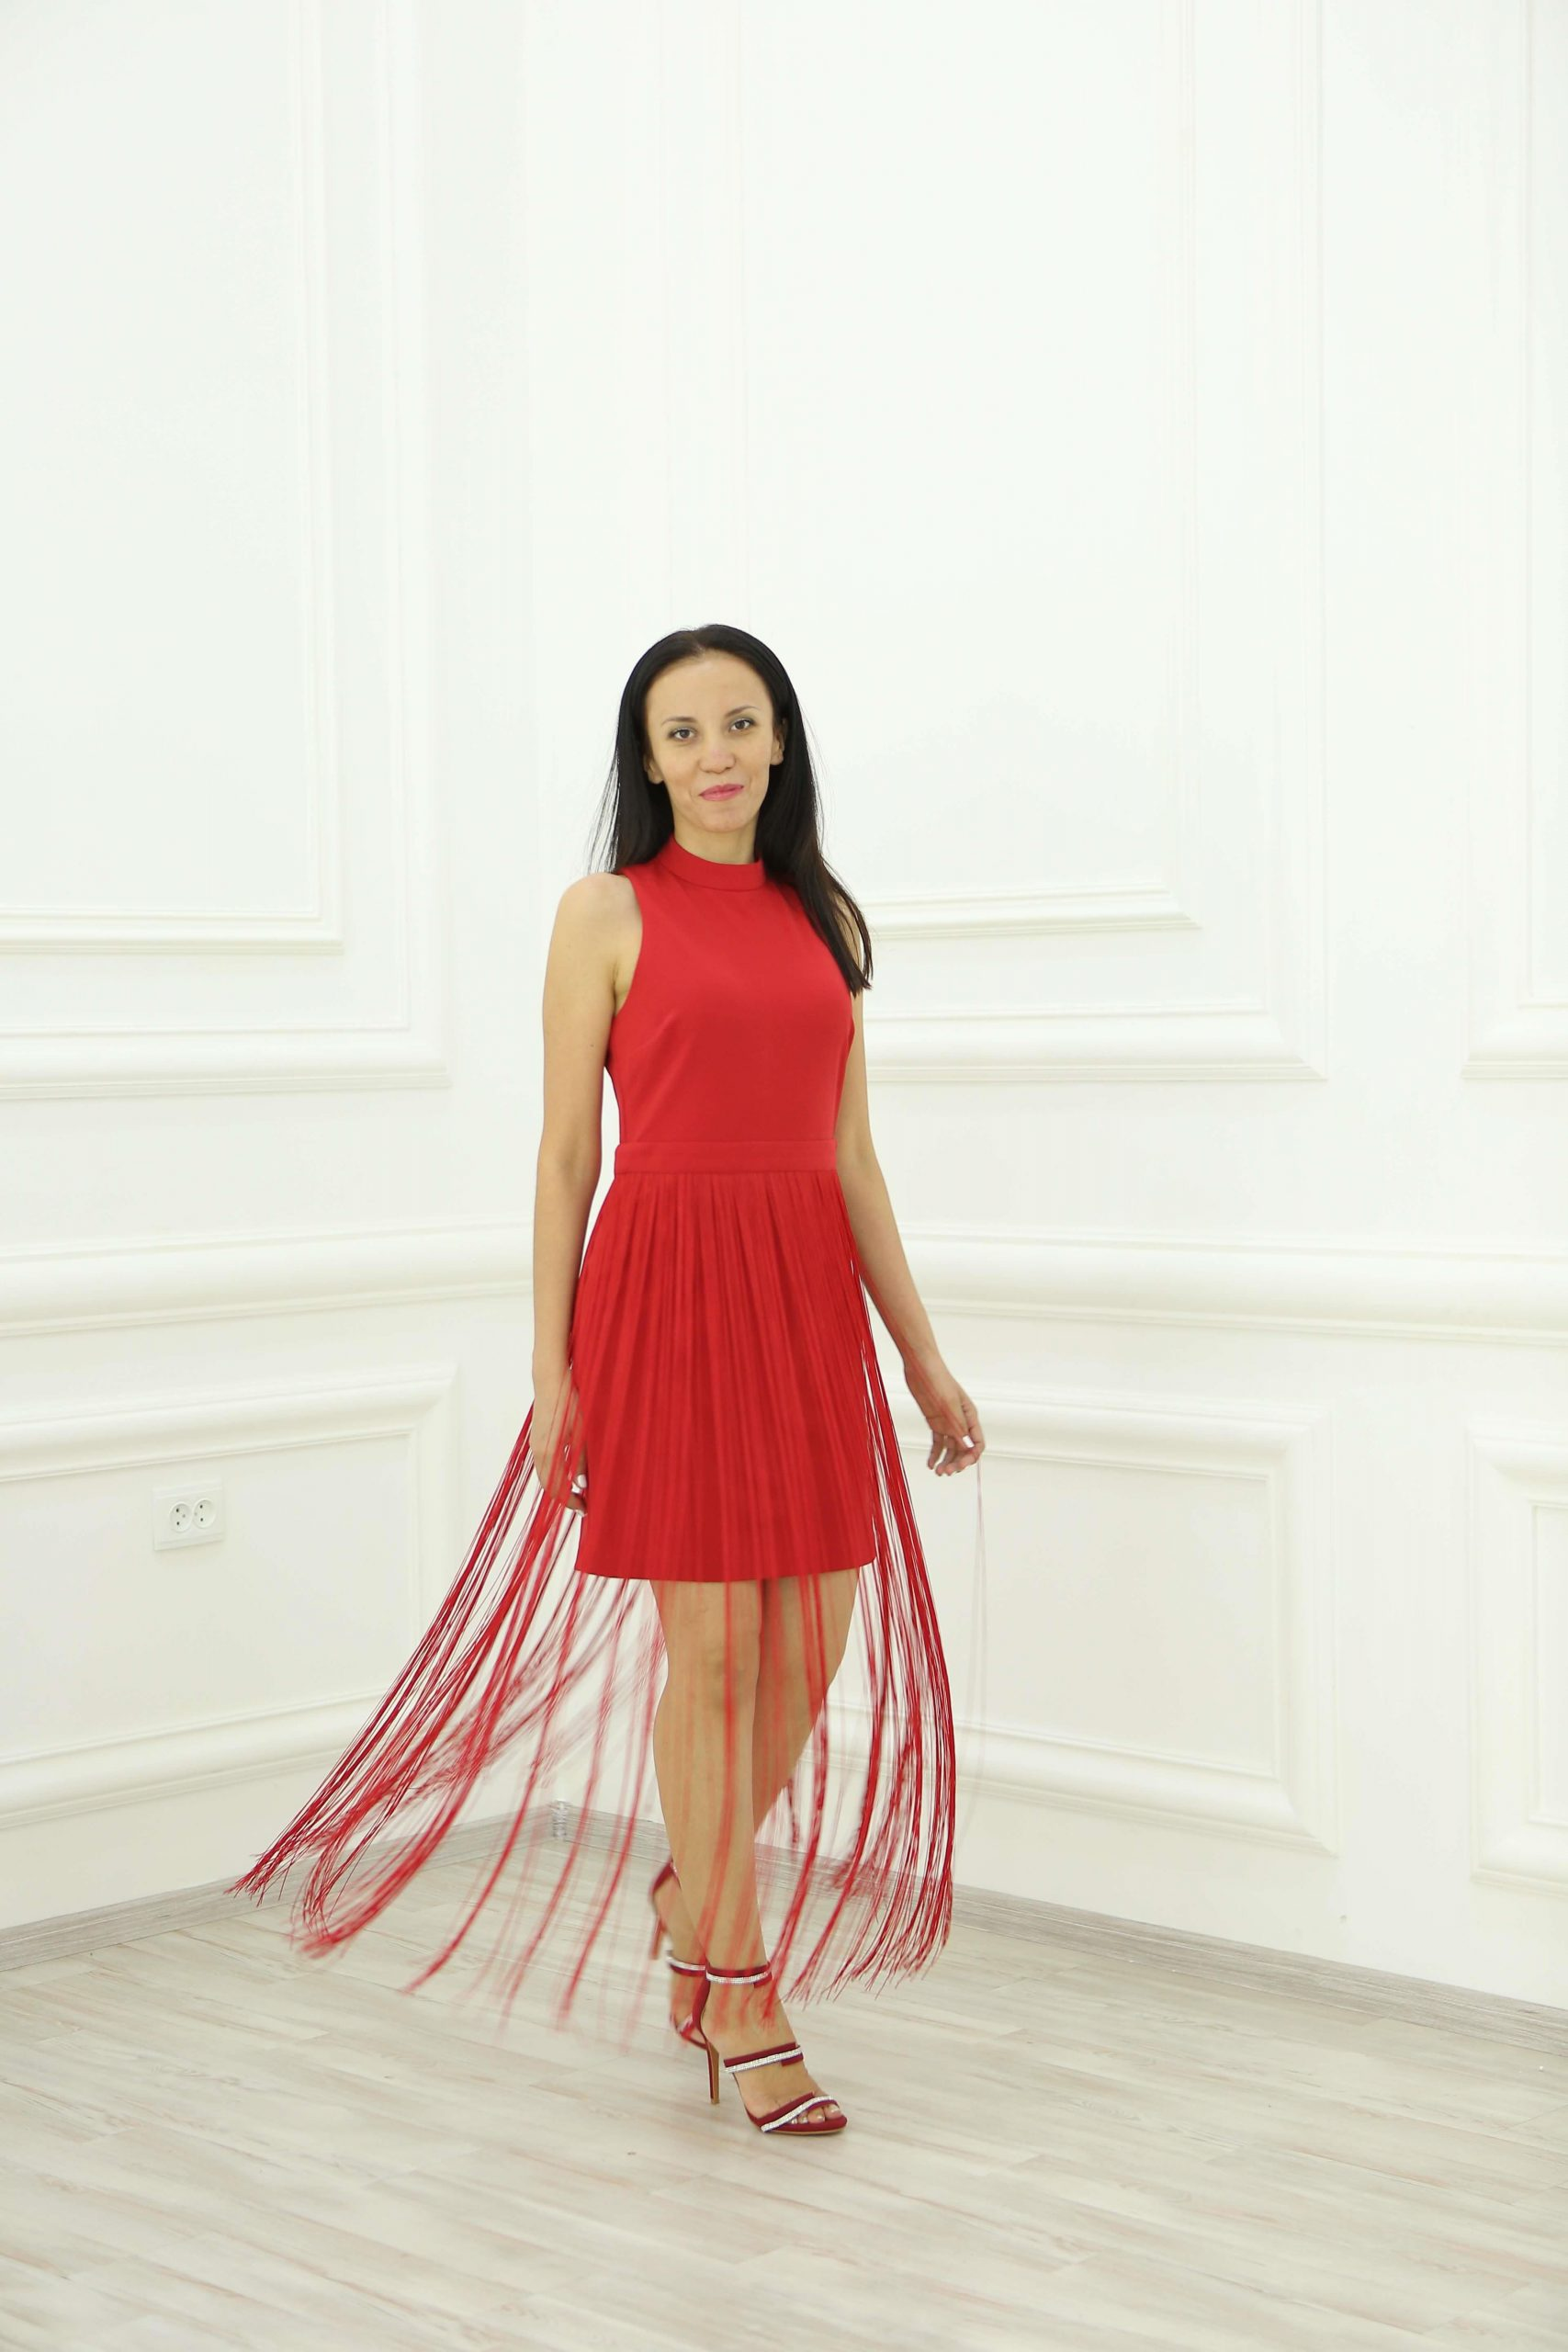 Red Evening Dress Total Red Outfit